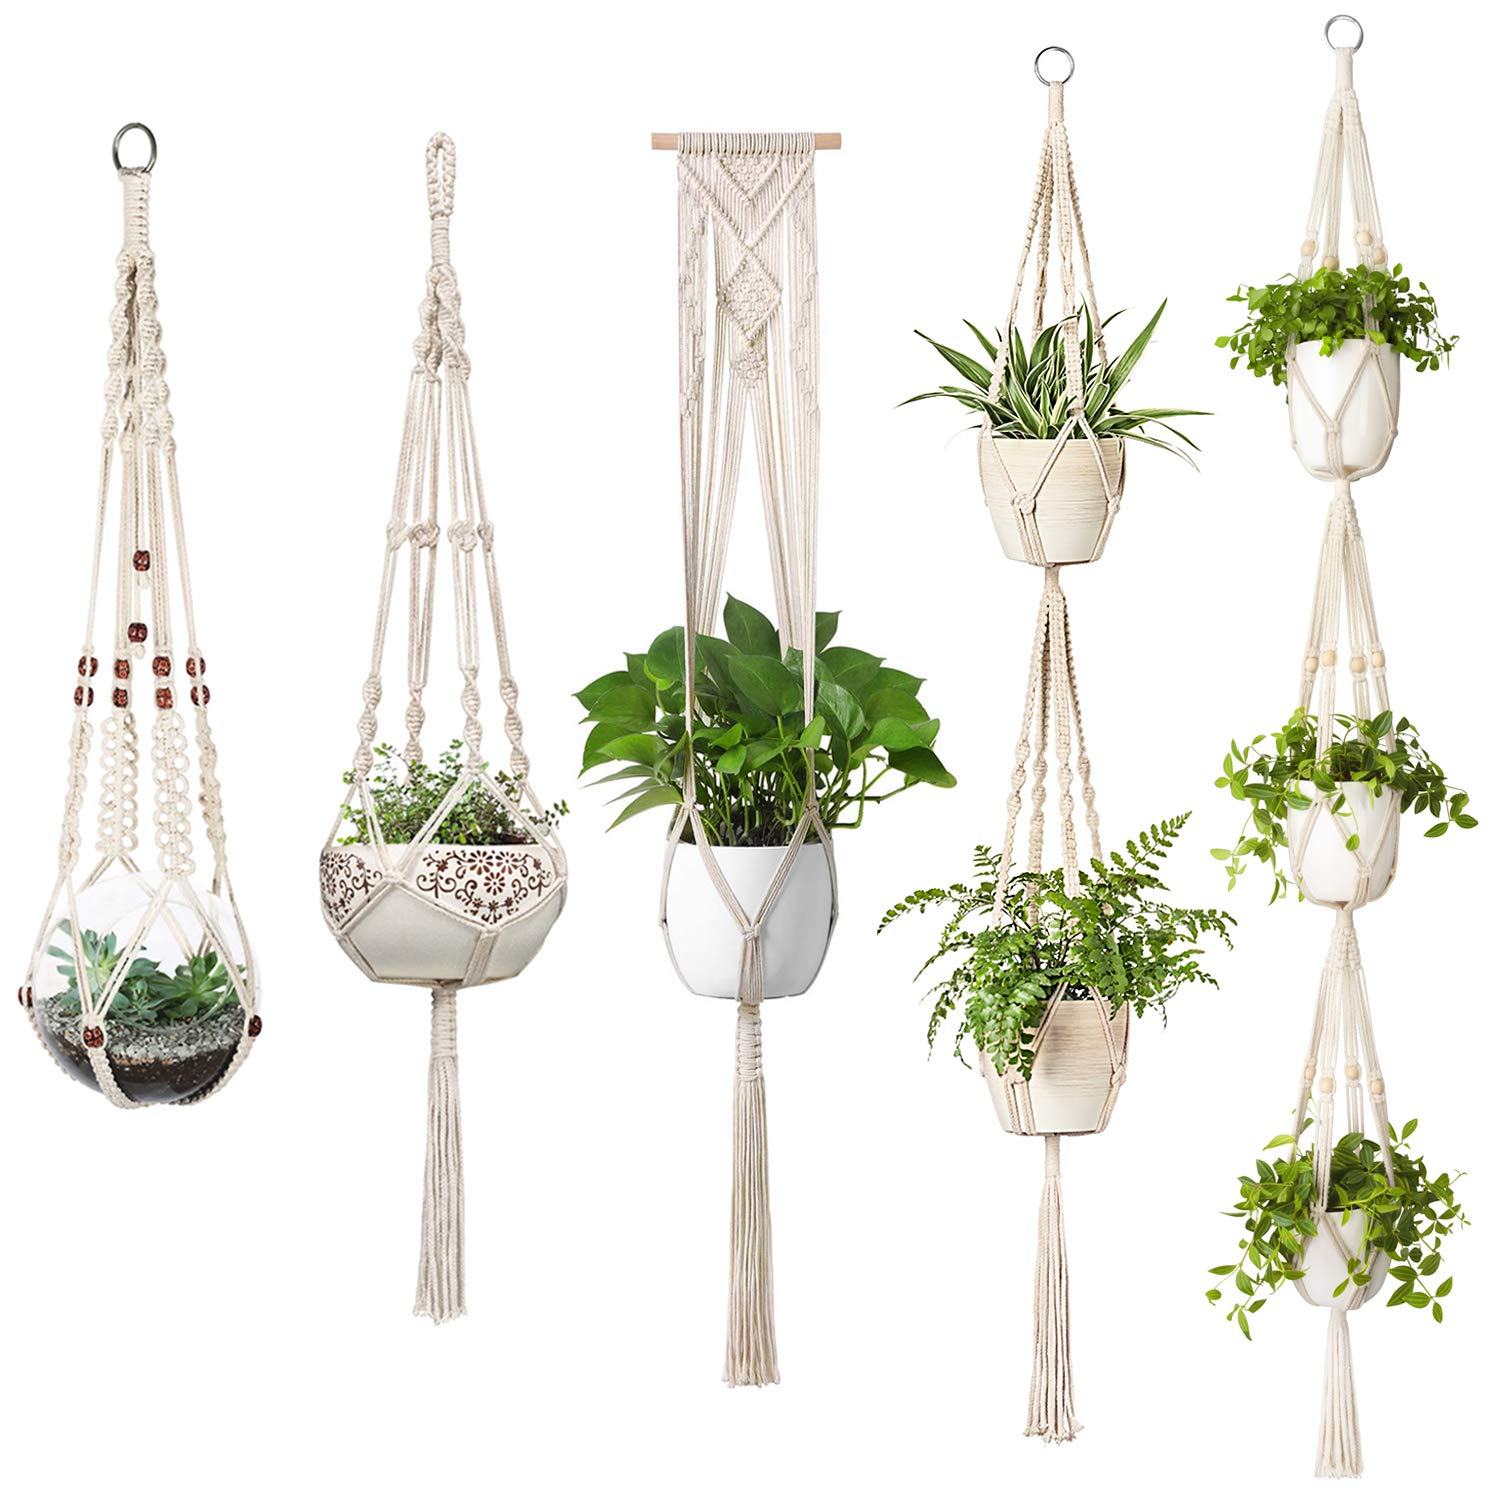 Mkono Macrame Plant Hangers, 5 Pack Different Tiers Indoor Hanging Planters Set Flower Pots Holder Stand Boho Home Decor